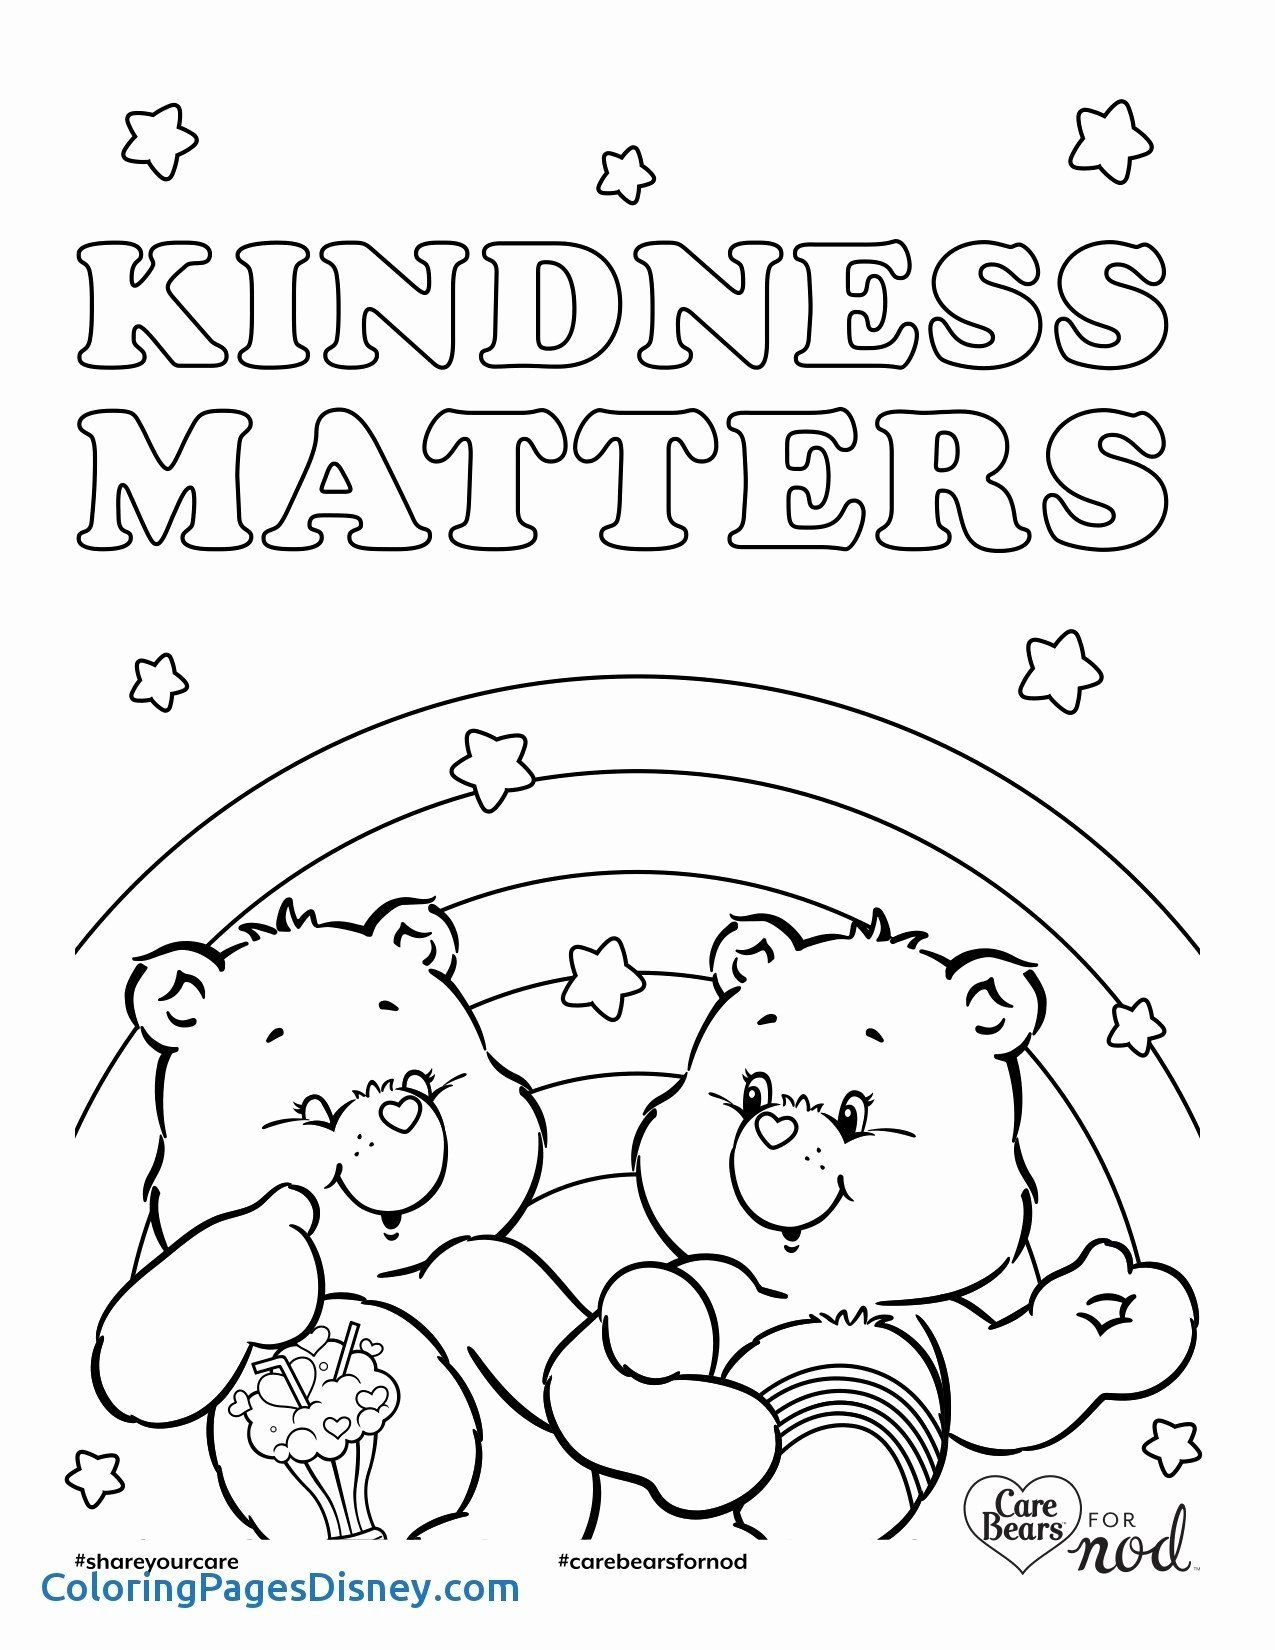 Crayola Coloring Pages Sheets For Free Printing Machine Kids ...   1650x1275